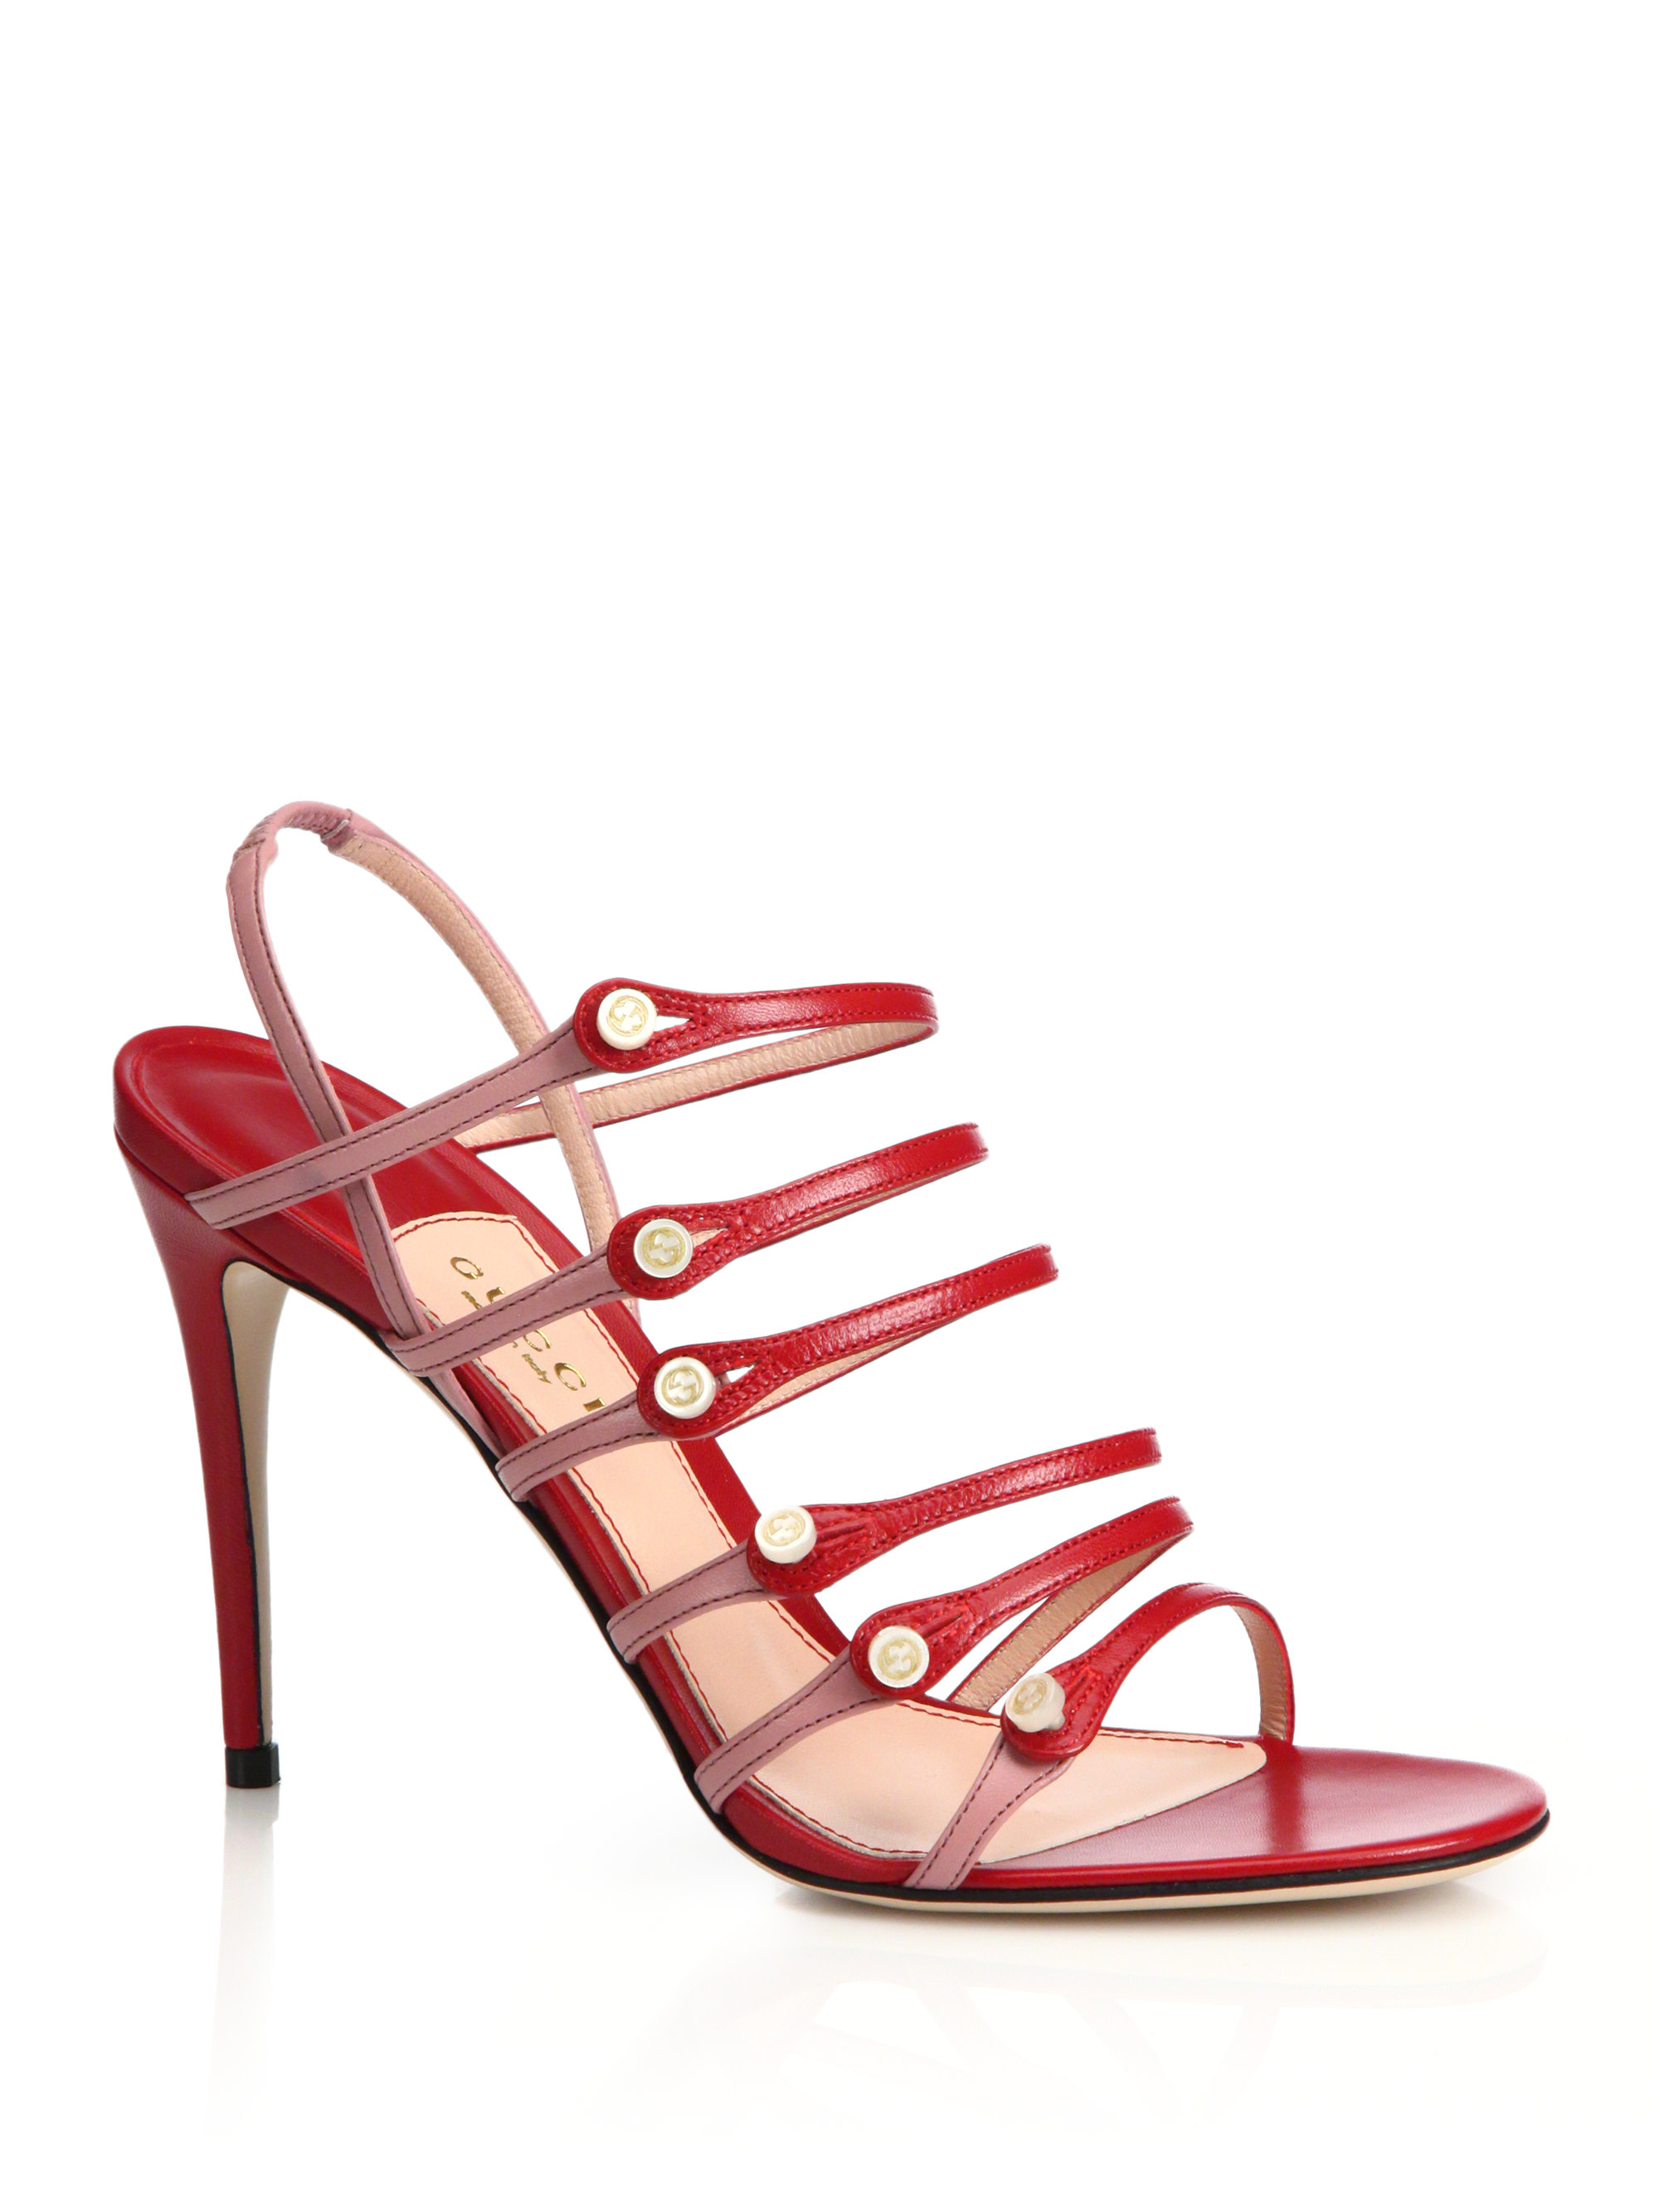 2af8679a8040 Lyst - Gucci Aneta Strappy Leather Button Sandals in Red